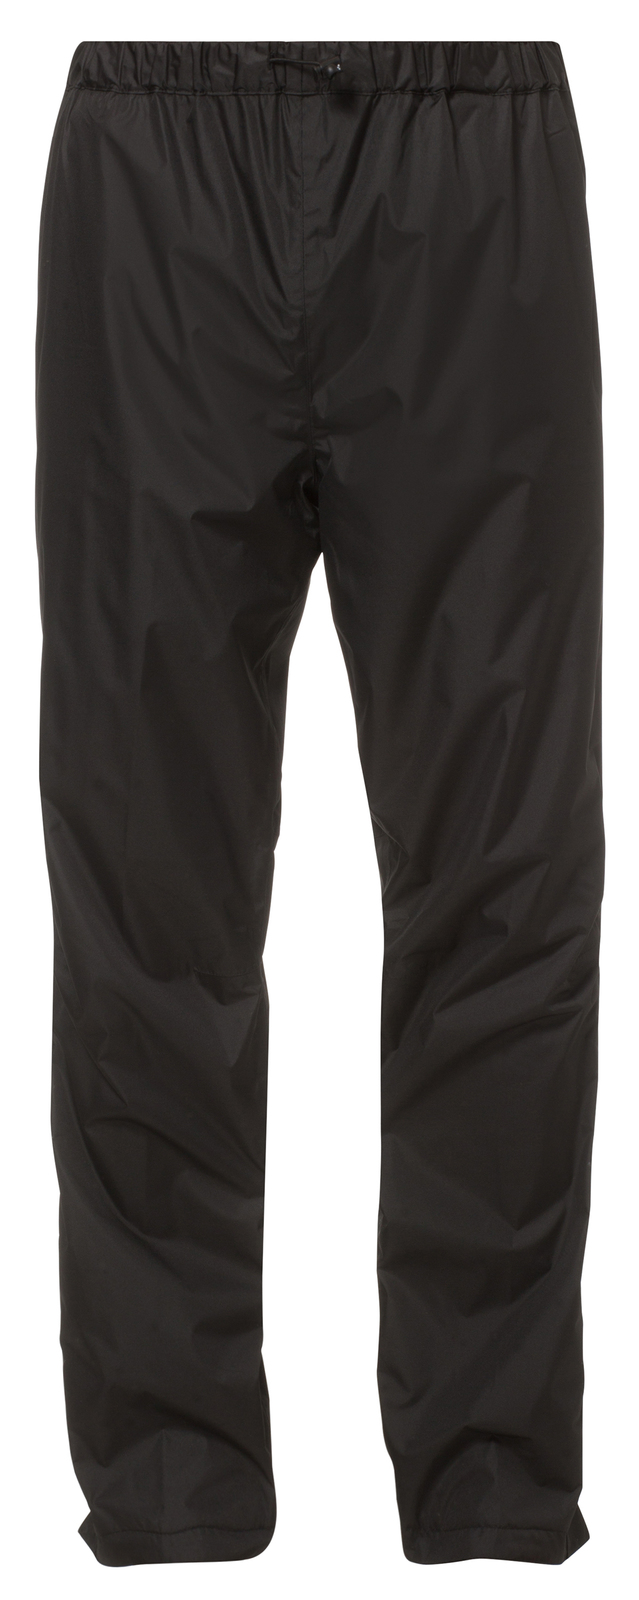 VAUDE Men´s Fluid Pants II black Größe S - schneider-sports